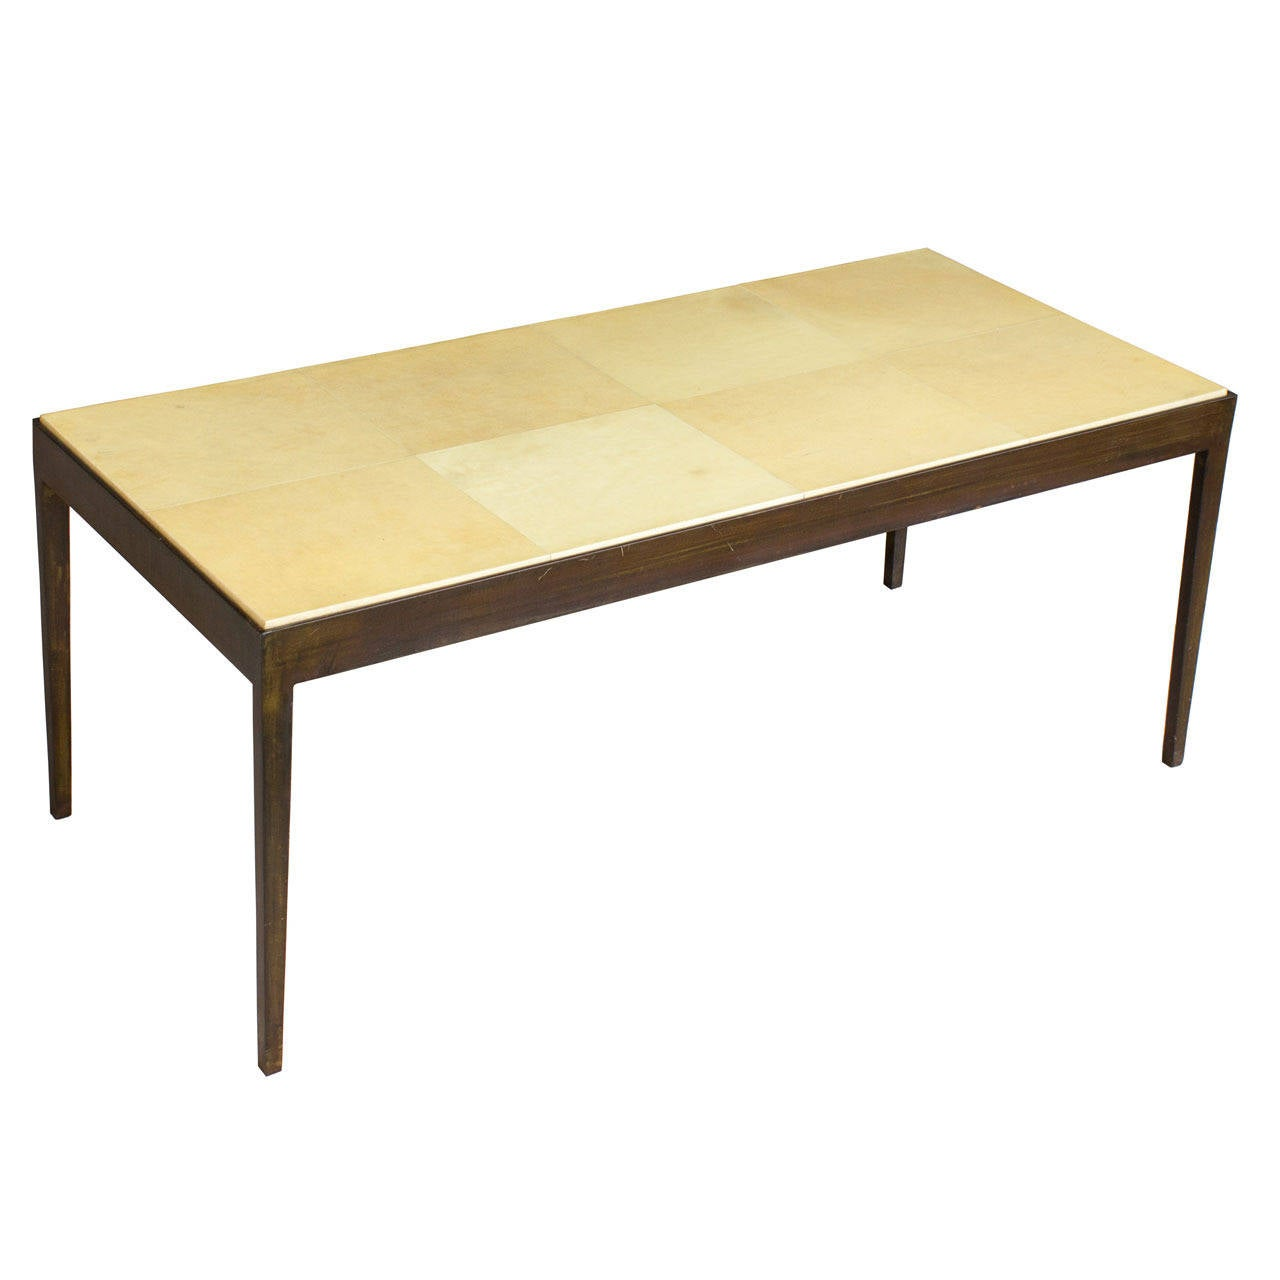 Iron Coffee Tables Modern Iron Coffee Table With Parchment Top For Sale At 1stdibs